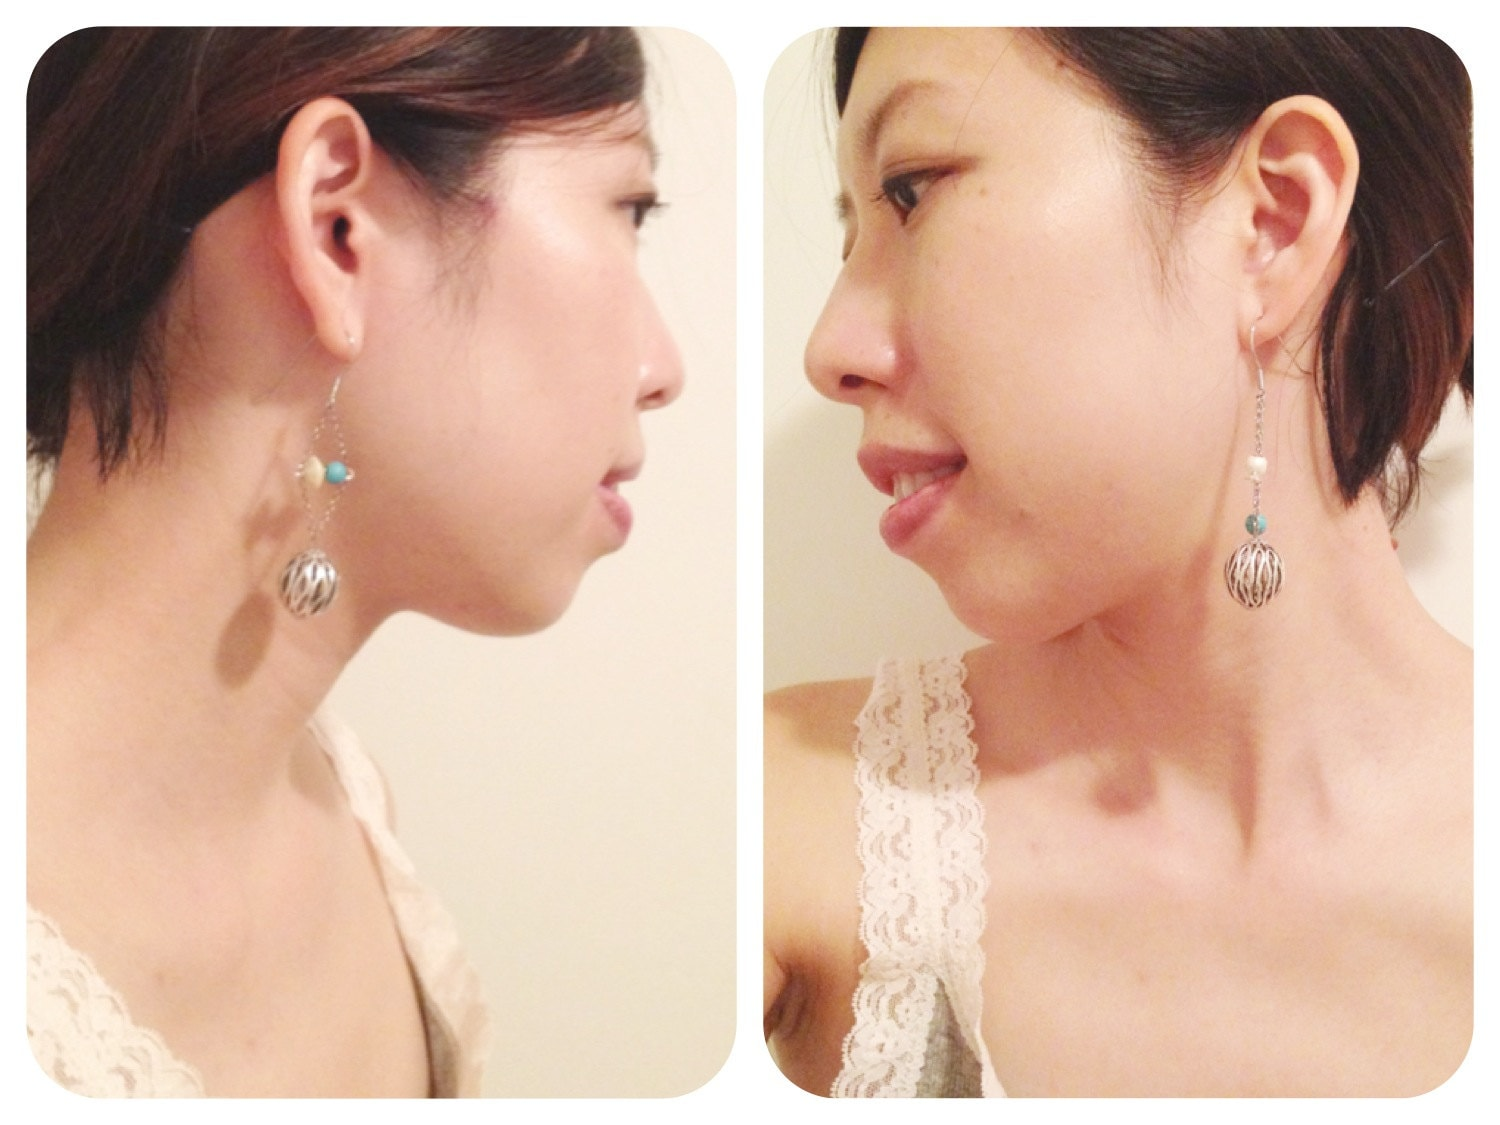 Bohemian Dangle Earrings, with Turquoise Stones and Pearly Beads, Asymmetrical Earrings, 925 silver earrings